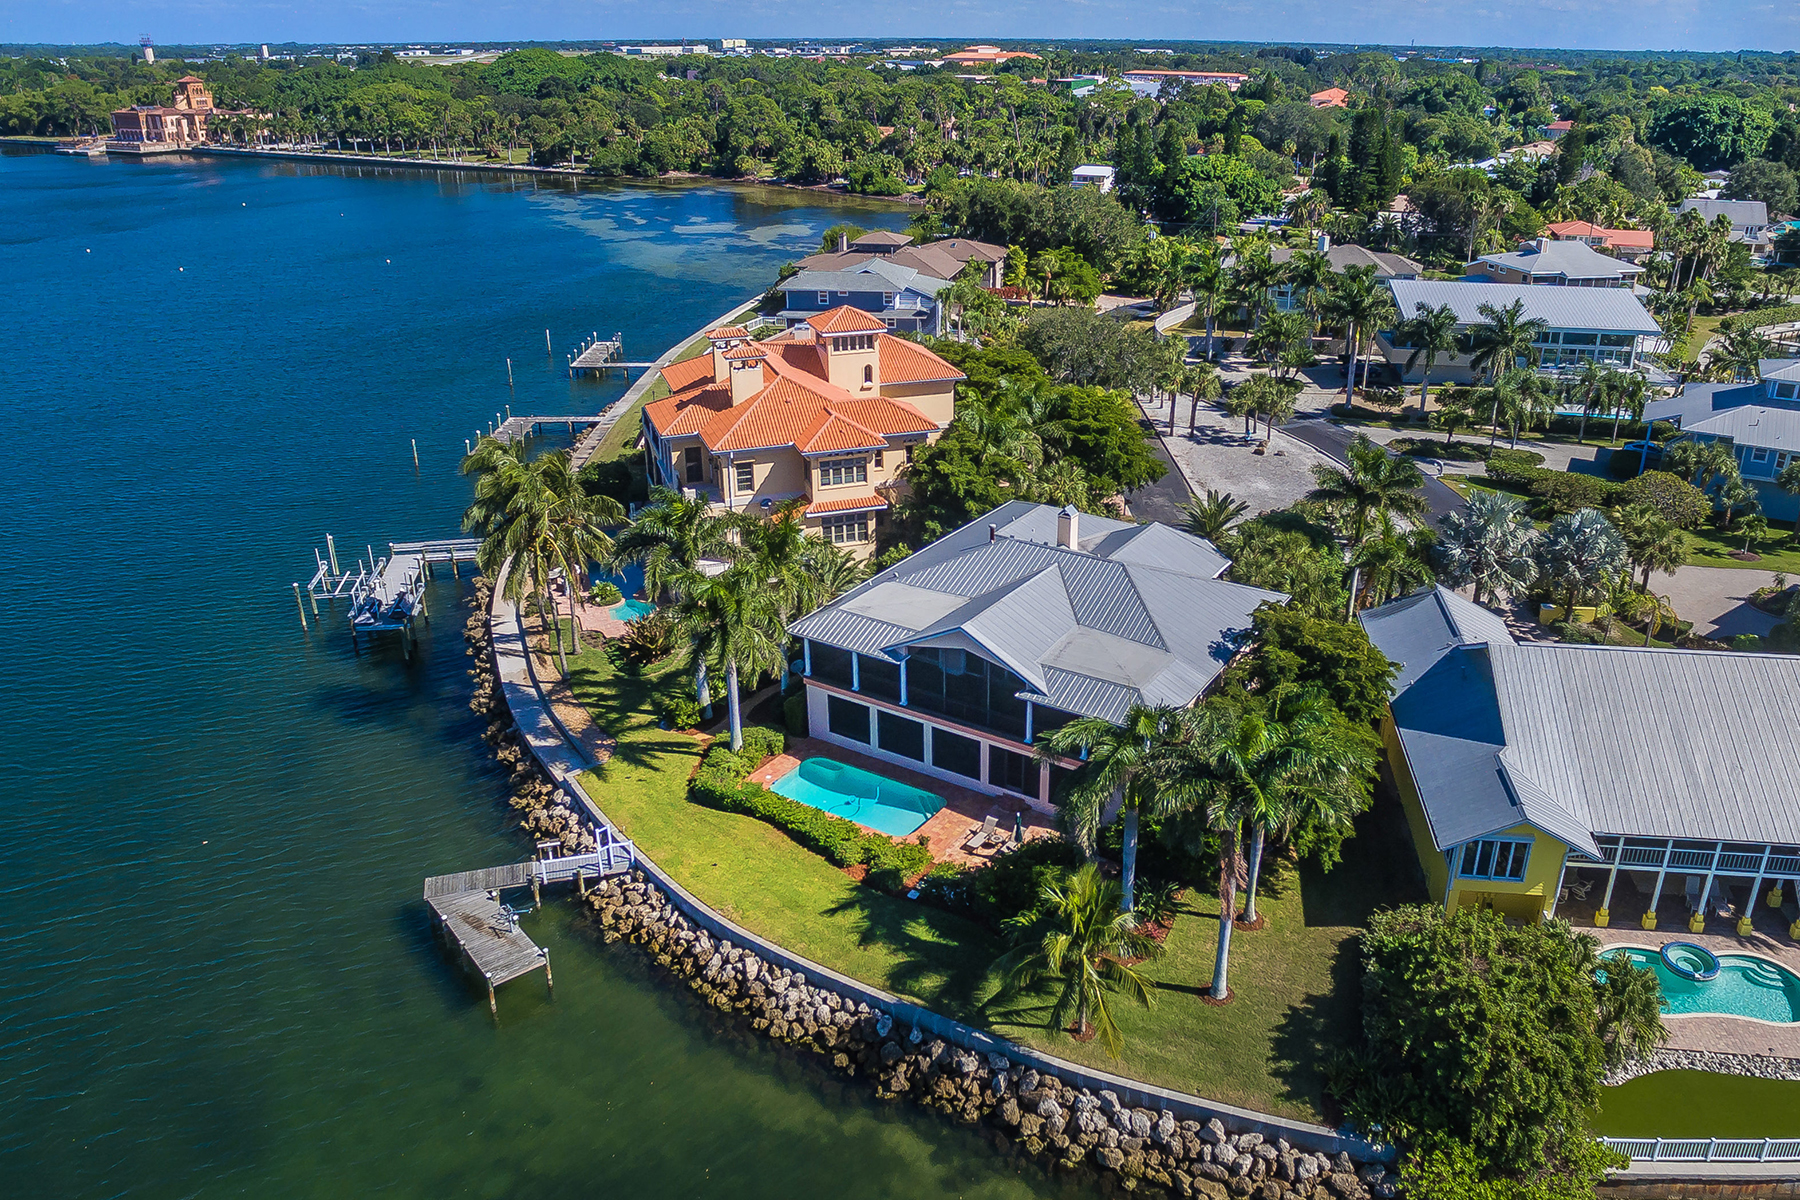 Single Family Home for Sale at SAPPHIRE SHORES 305 Ringling Point Dr Sarasota, Florida, 34234 United States